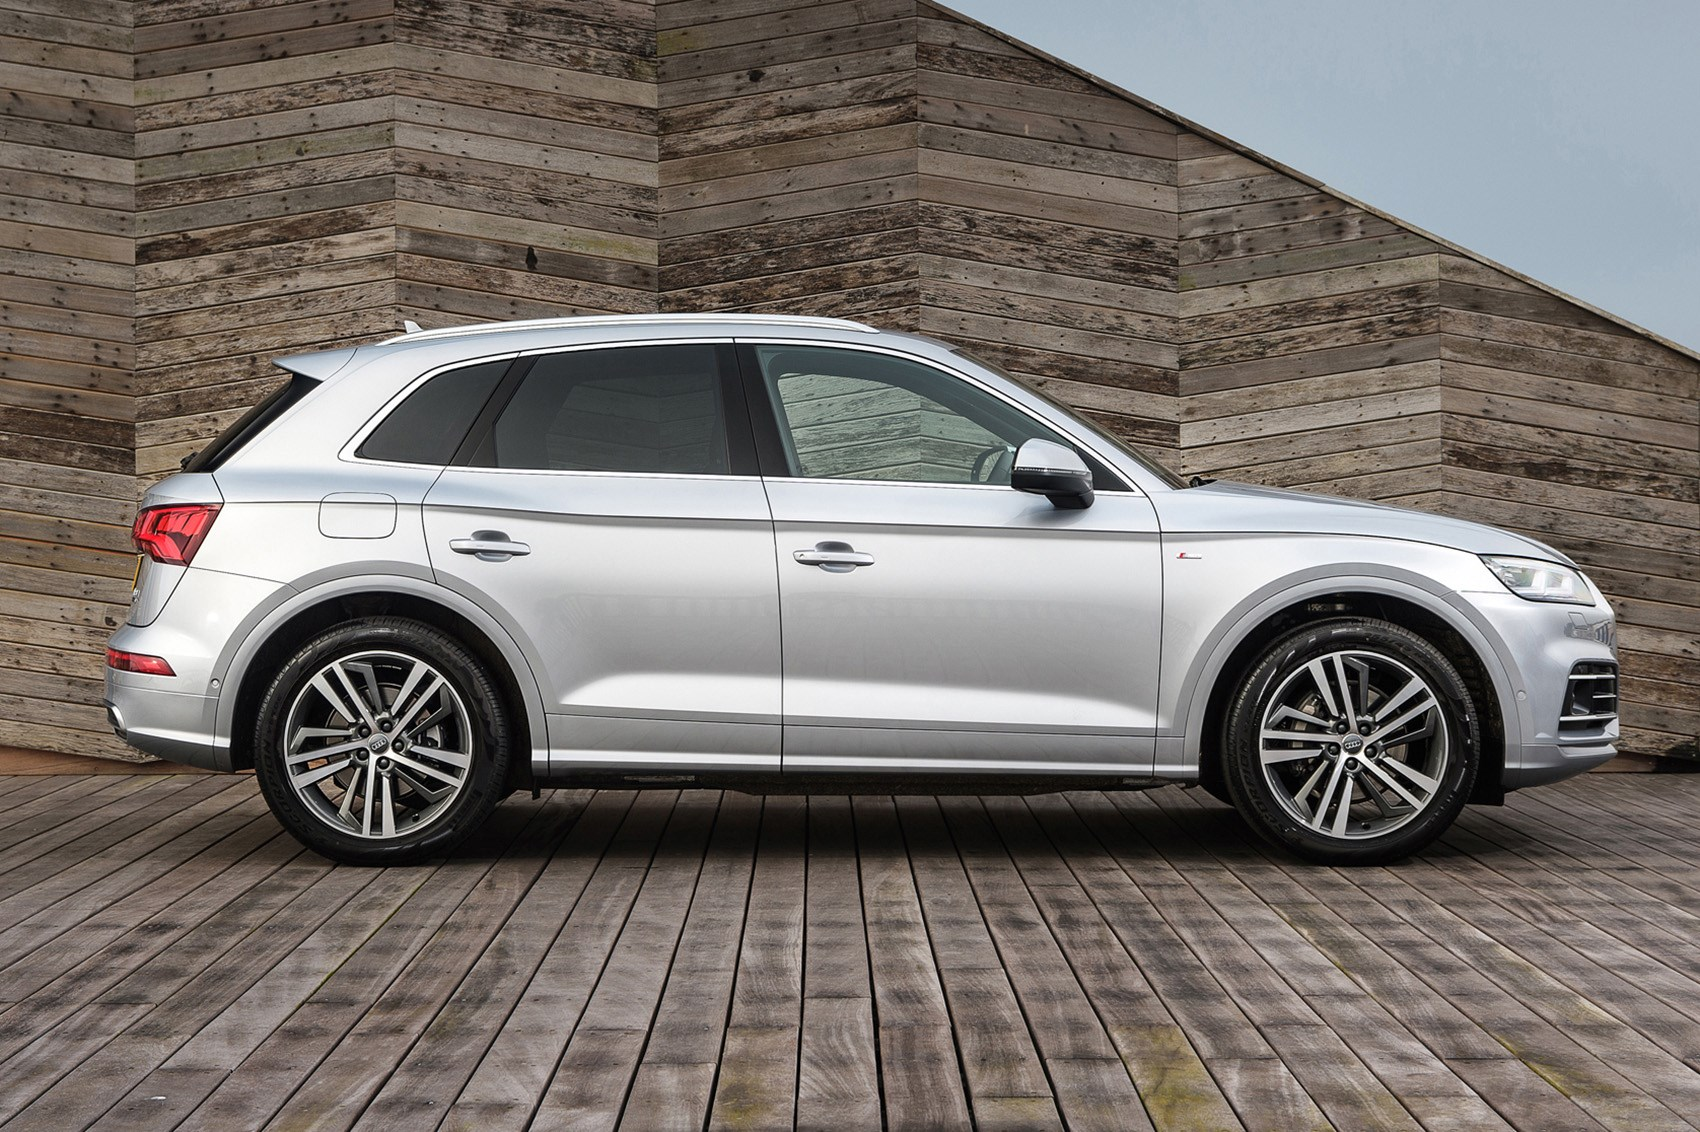 Silver 2019 Audi Q5 SUV side elevation